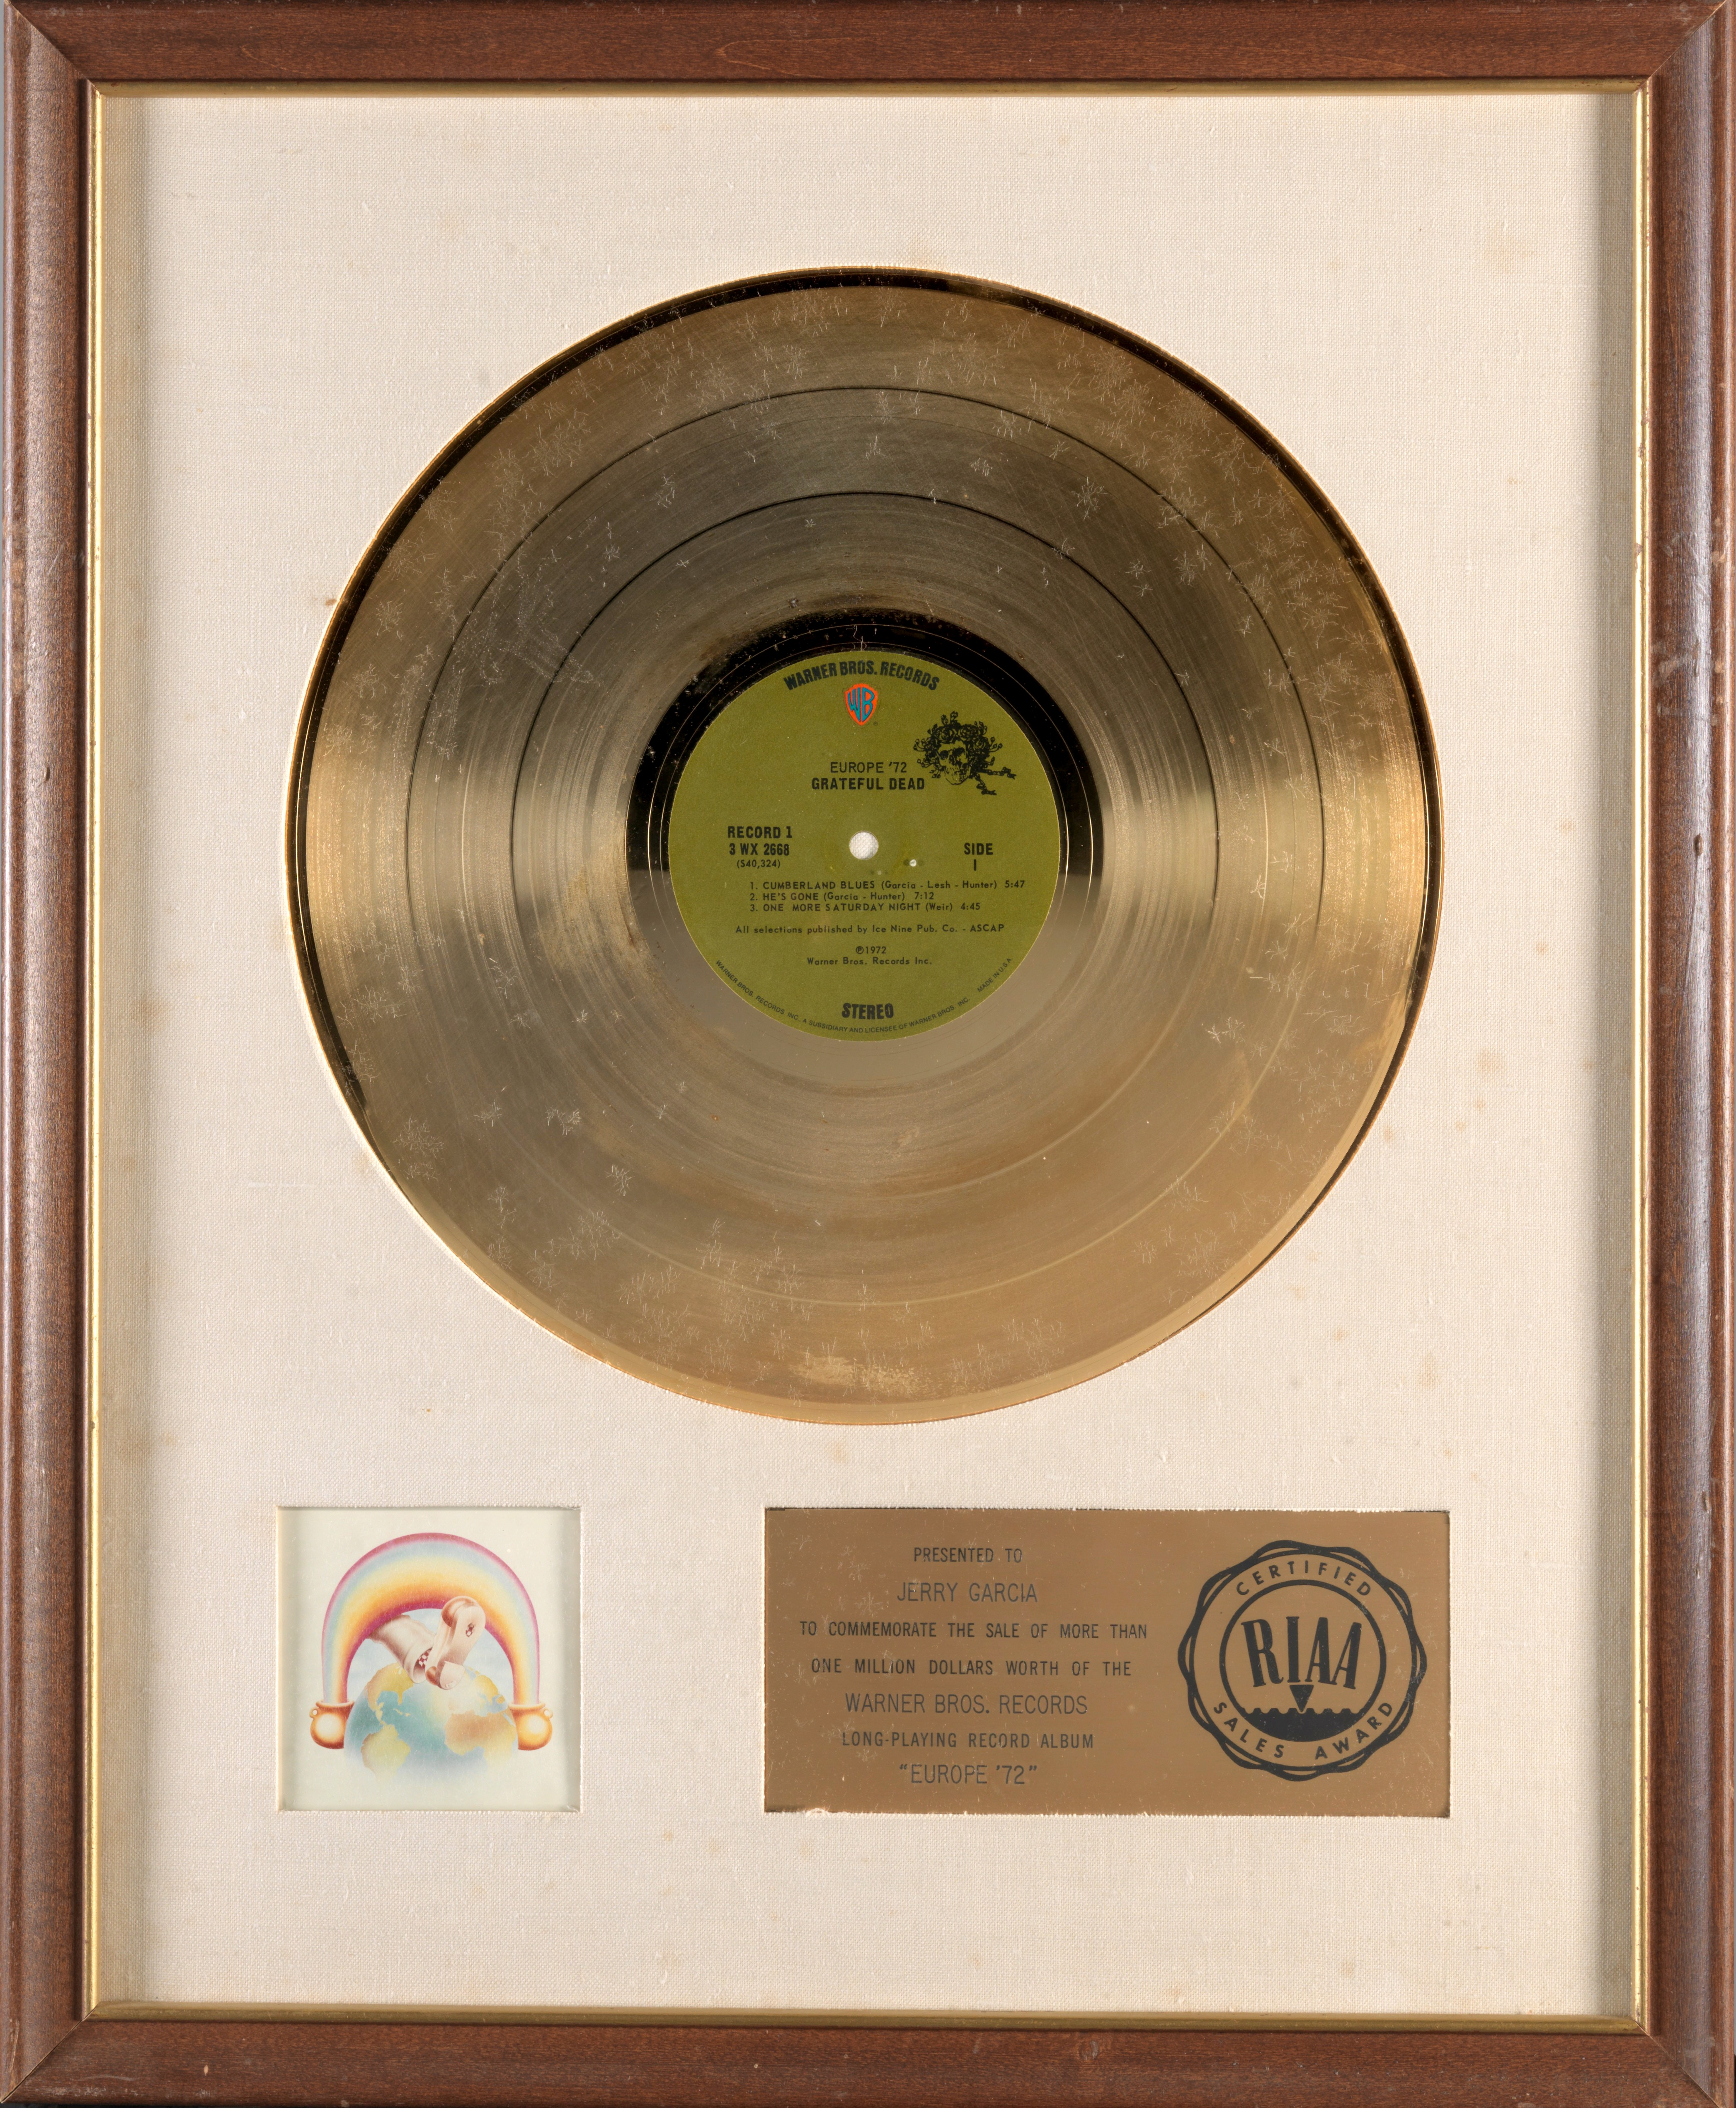 A JERRY GARCIA 'GOLD' SALES AWARD FOR THE GRATEFUL DEAD ALBUM EUROPE '72 1972